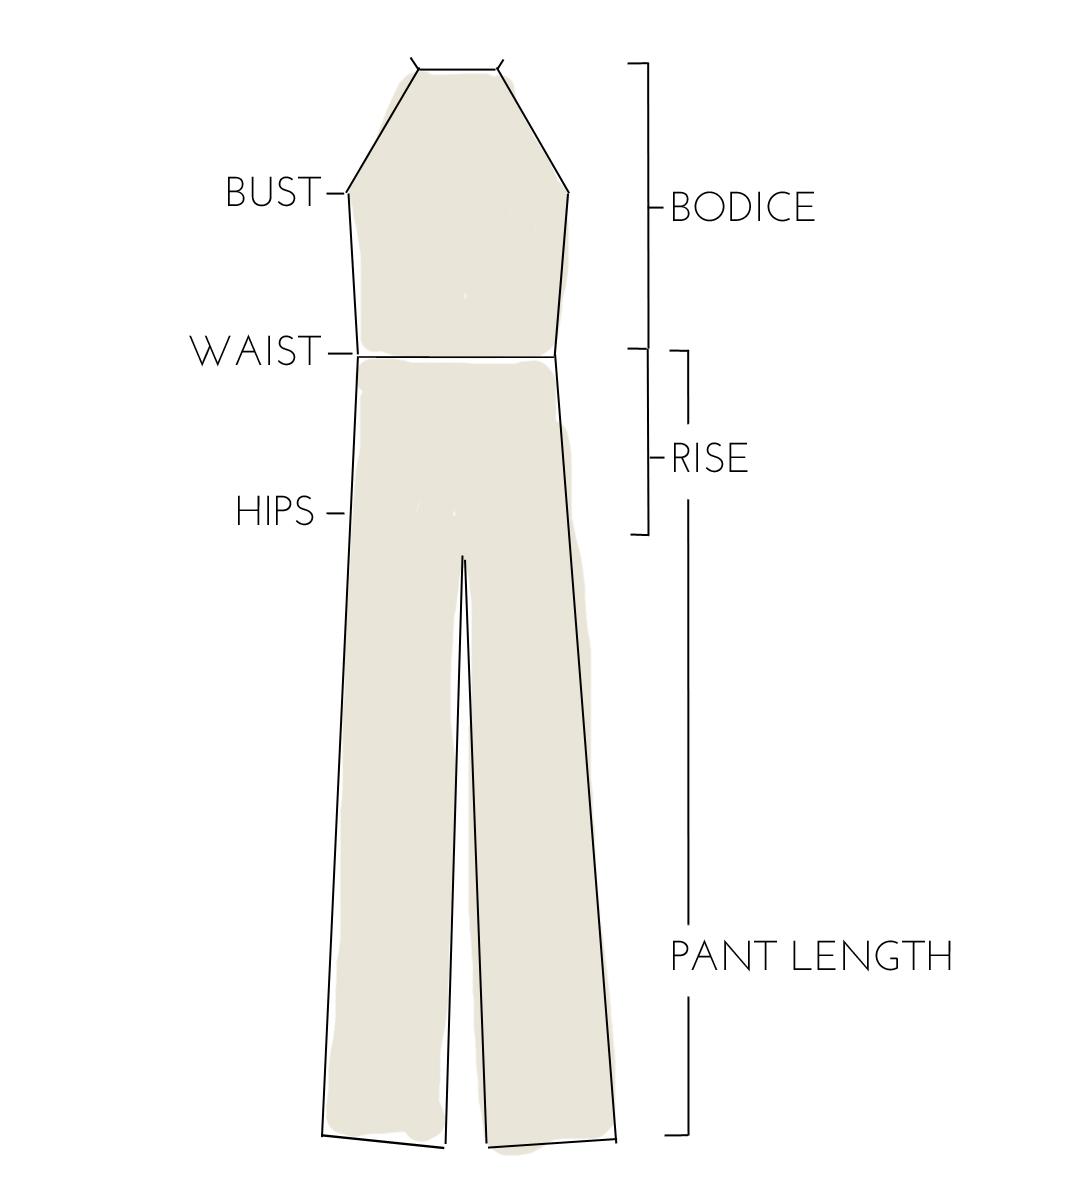 Size Guide - Here at WELCOME, we don't subscribe to the idea that women's bodies are measured in 'small, medium, and large'. We're beautiful in all shapes and sizes, so we make our clothing easy to adjust to many bodies and make measurements available for each item. This is an easy guide to understand what each measurement means. If you have further questions, feel free to ask. We're happy to help!